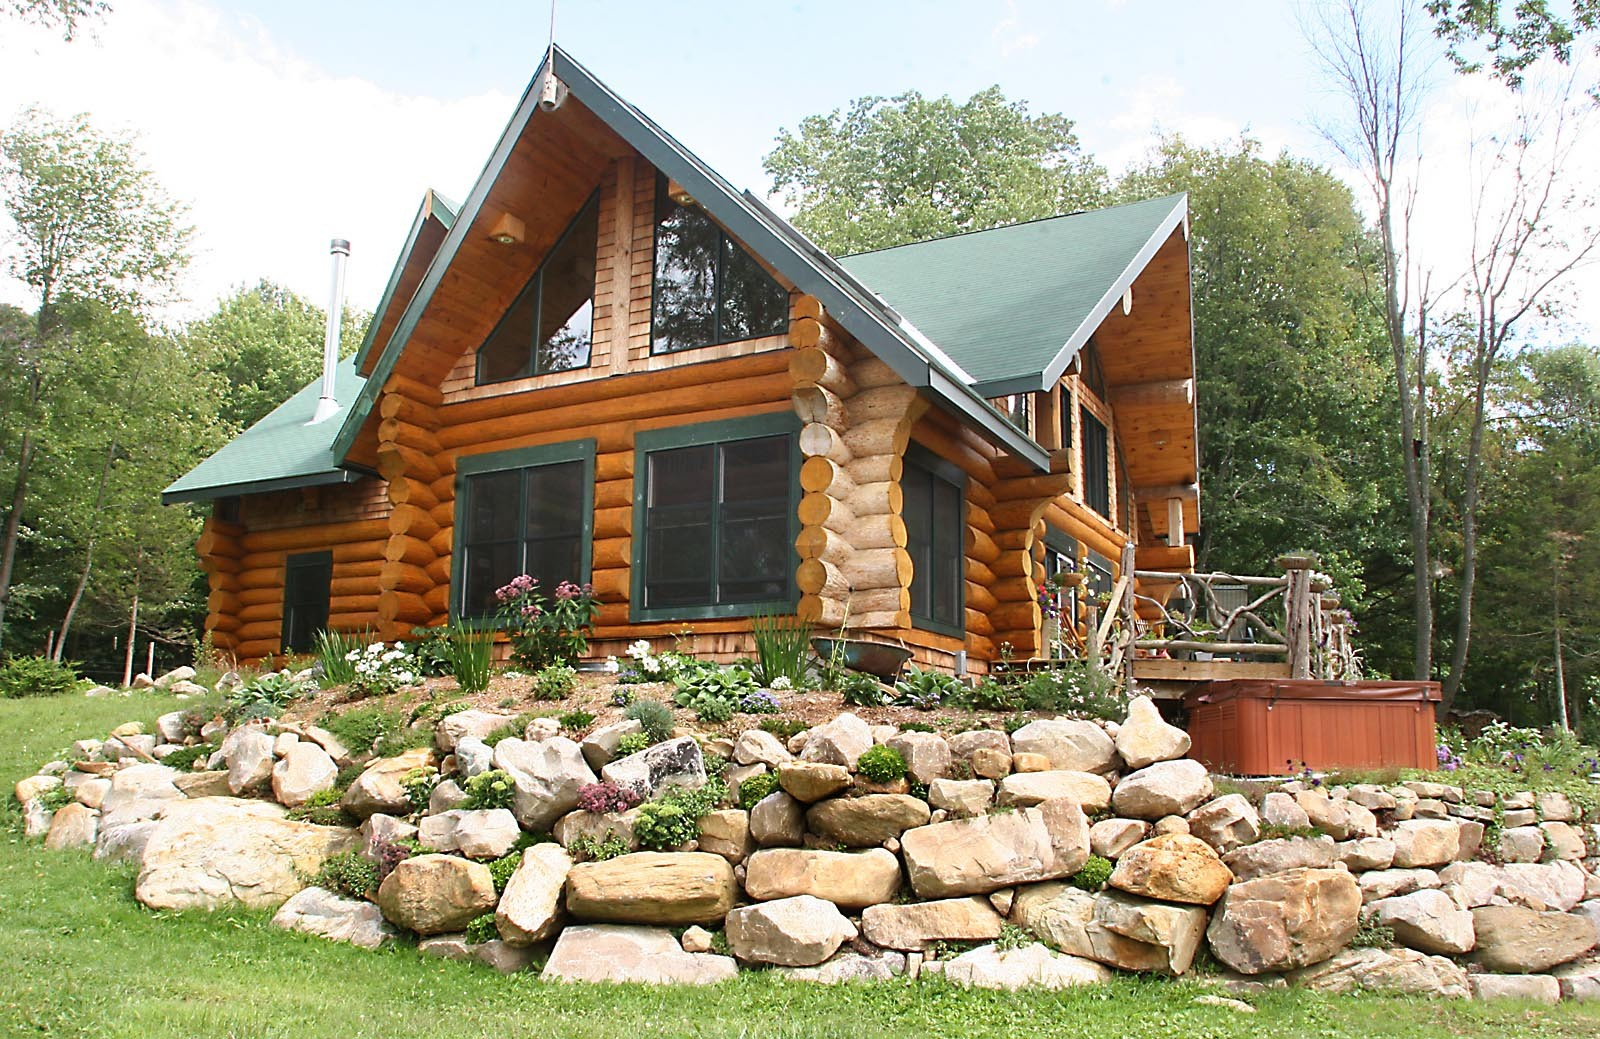 2800 SQFT Luxury Log Cabin The Builders